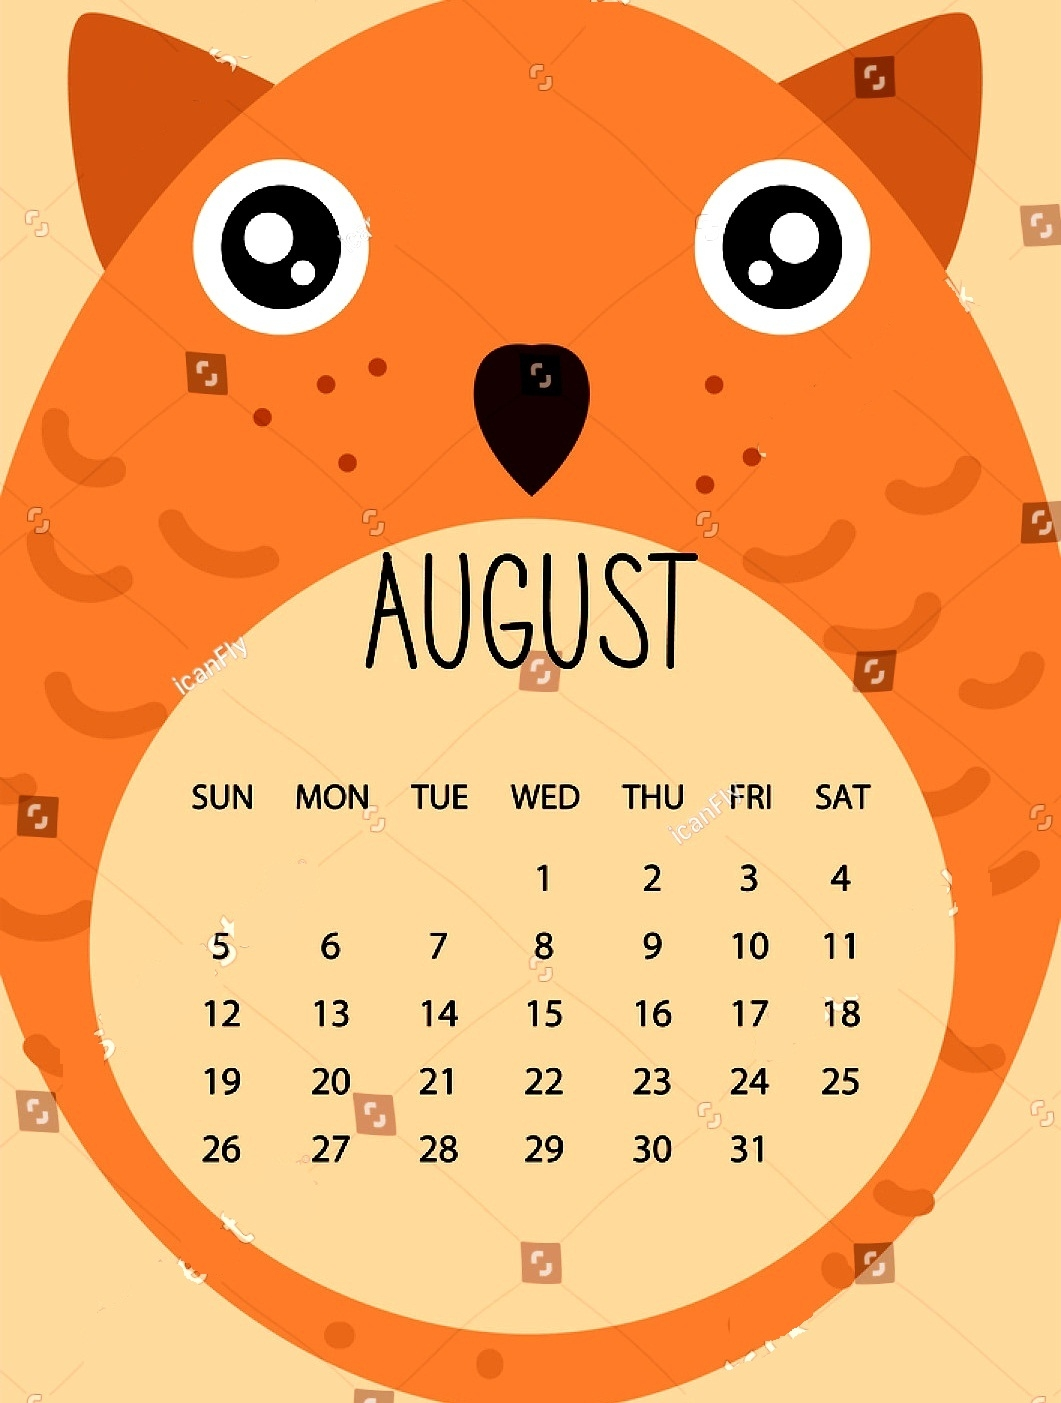 cute printable calendar august 2018 daily calendar 2018 printable Cute Printable Calendar For August 2018 erdferdf